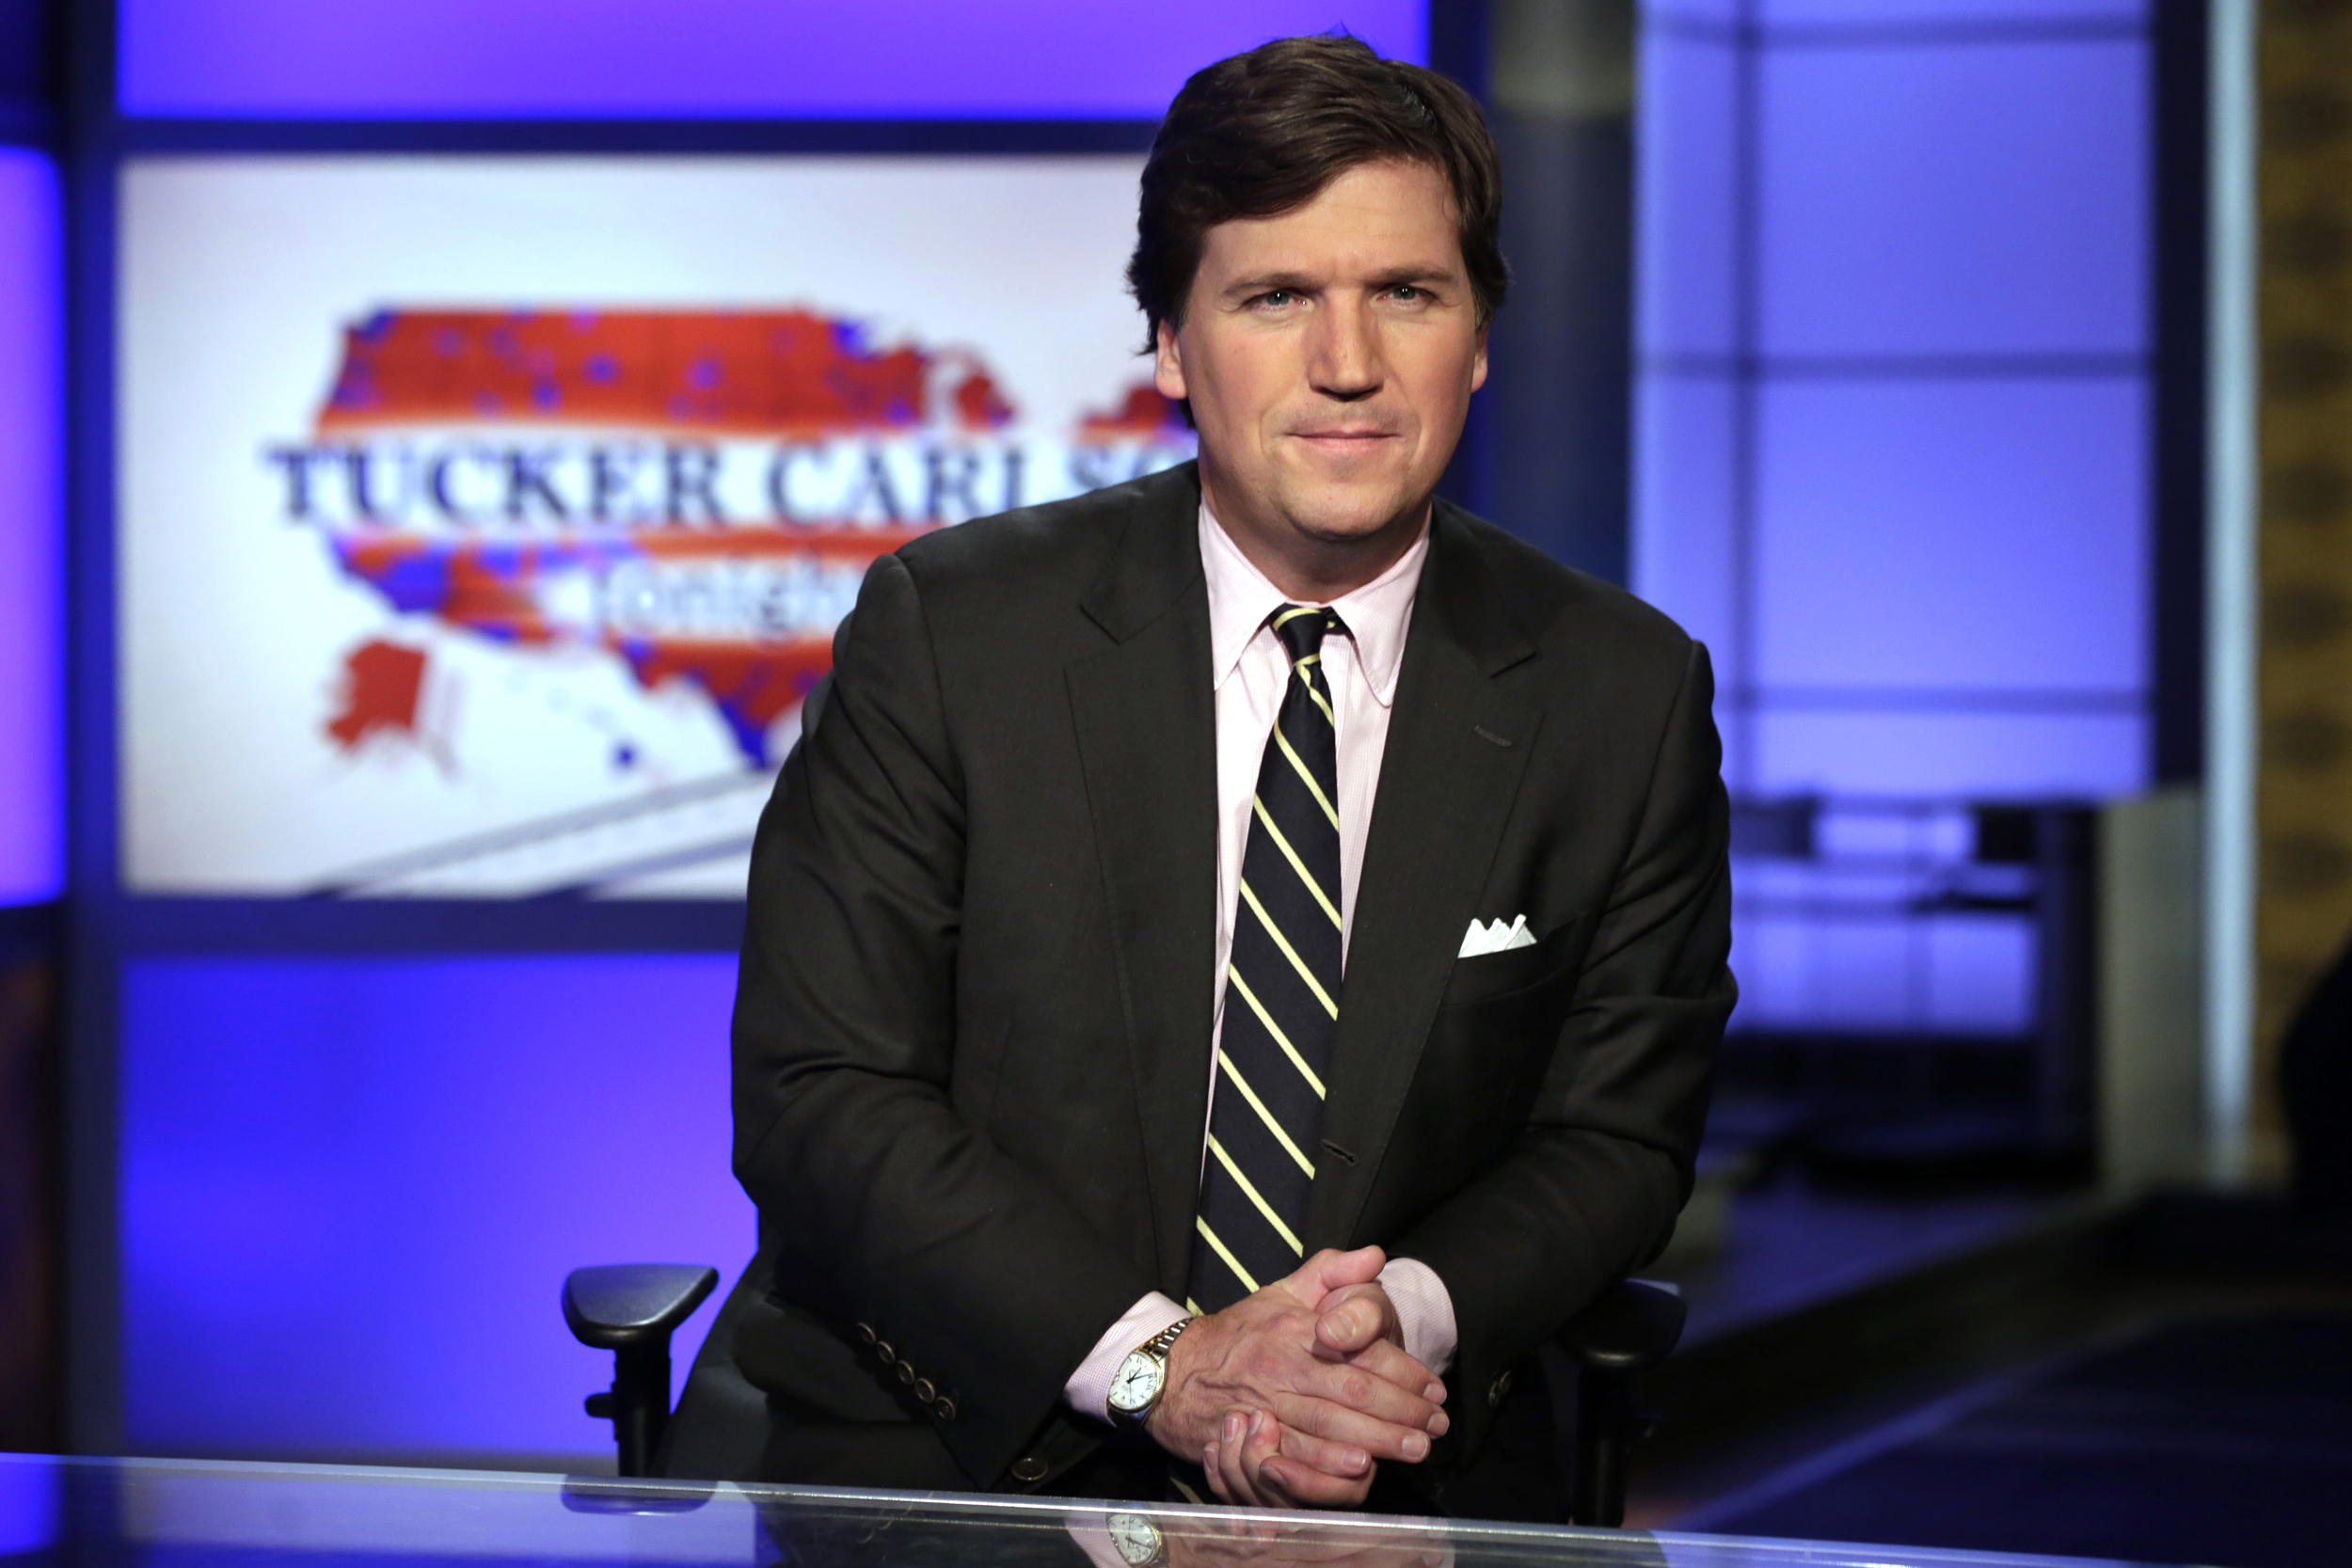 Top Tucker Carlson writer at Fox News resigns after alleged racist, sexist online remarks